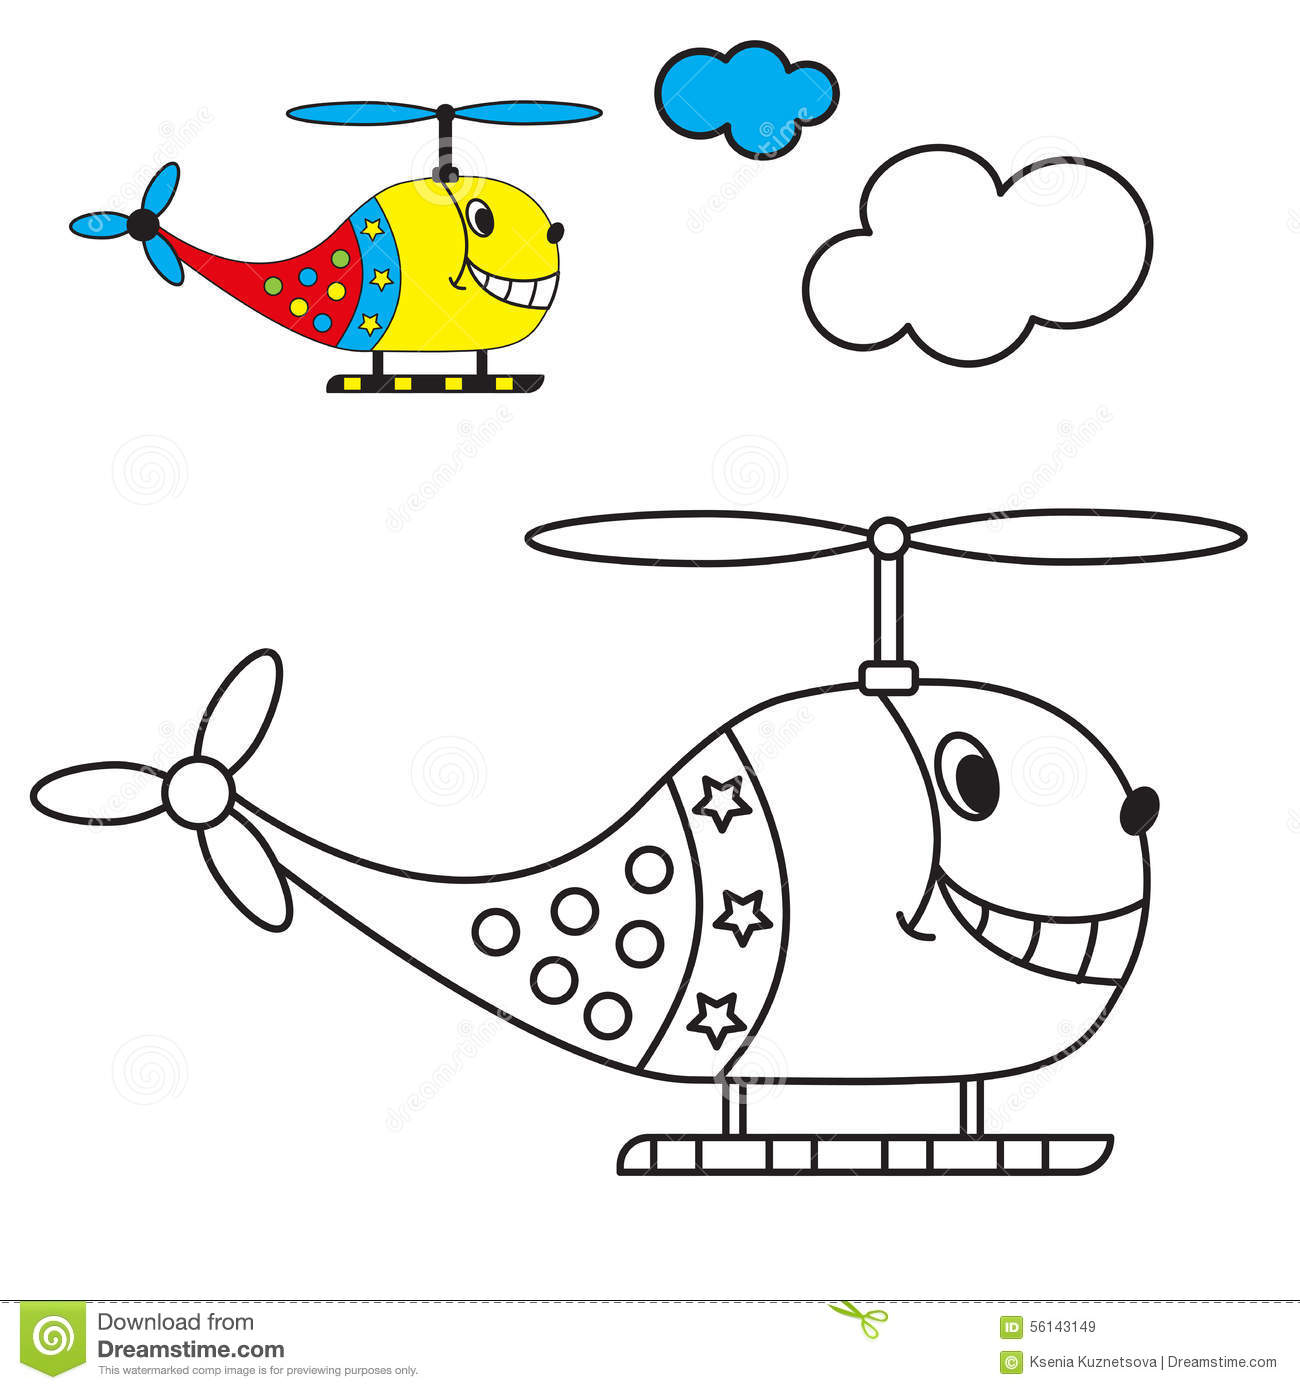 Coloring Book The Helicopter In The Sky With Stock Vector